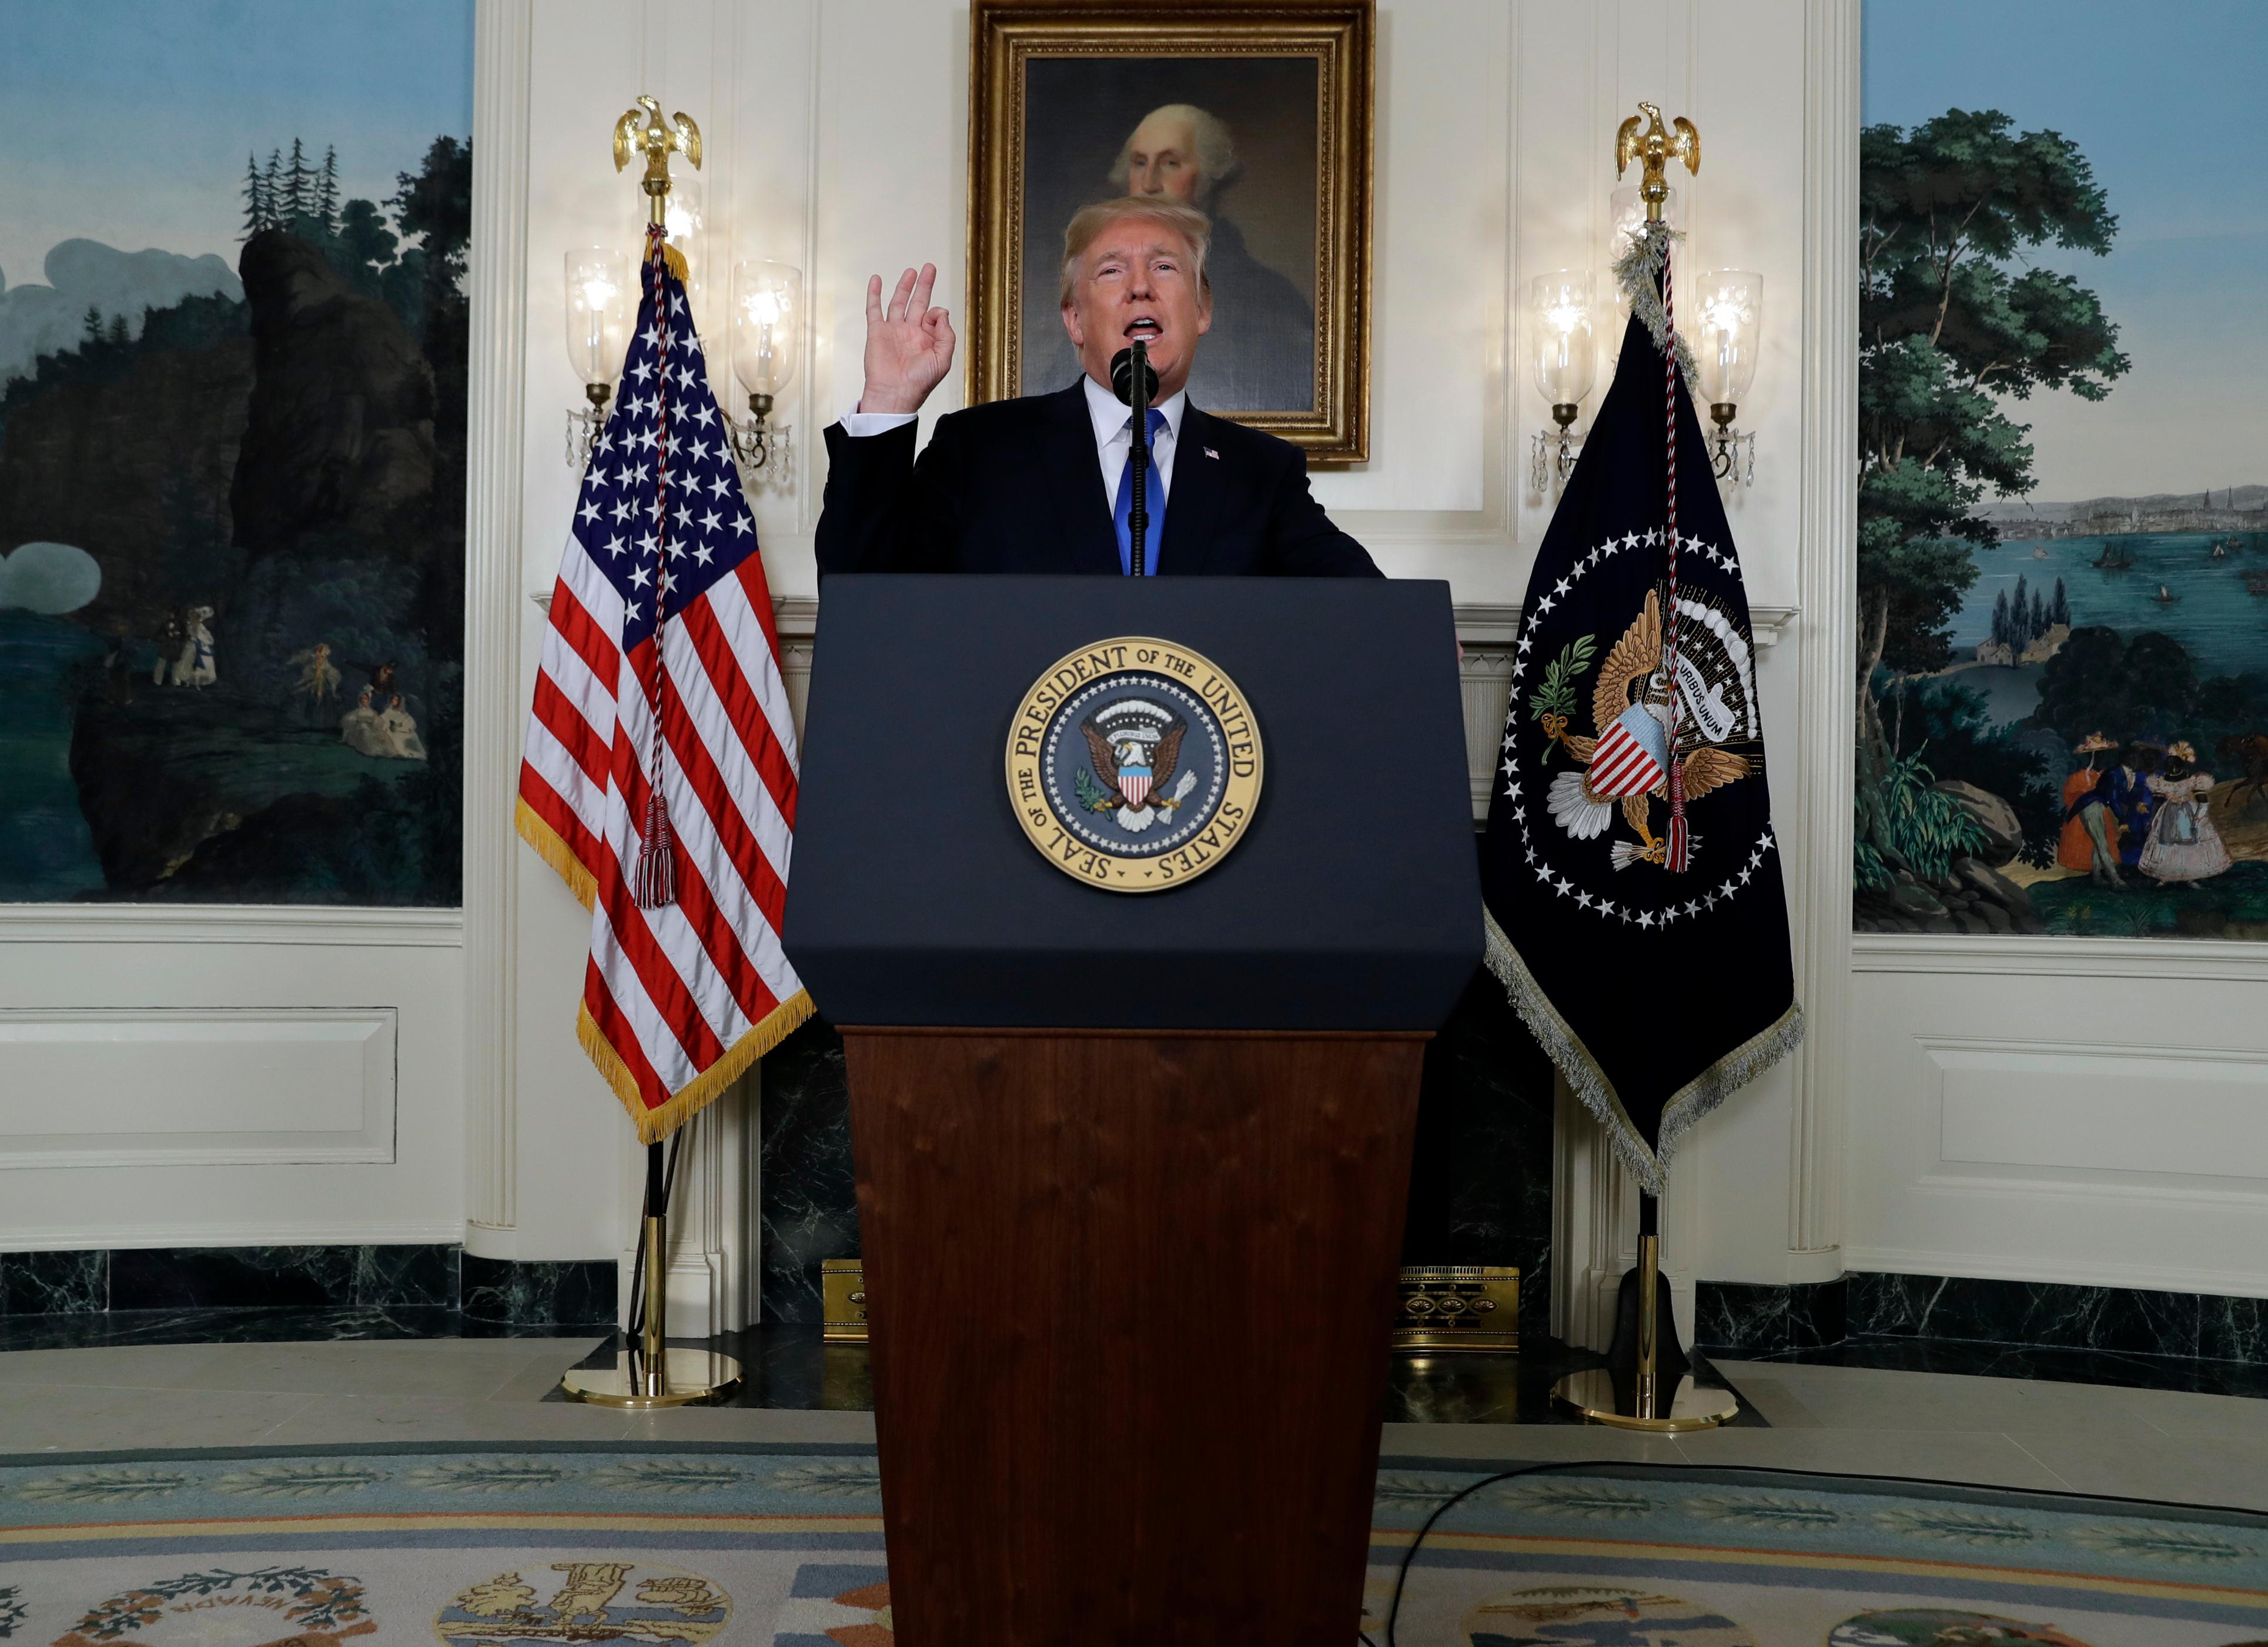 President Donald Trump speaks on Iran policy from the Diplomatic Reception Room of the White House, Friday, Oct. 13, 2017, in Washington. (AP Photo/Evan Vucci)